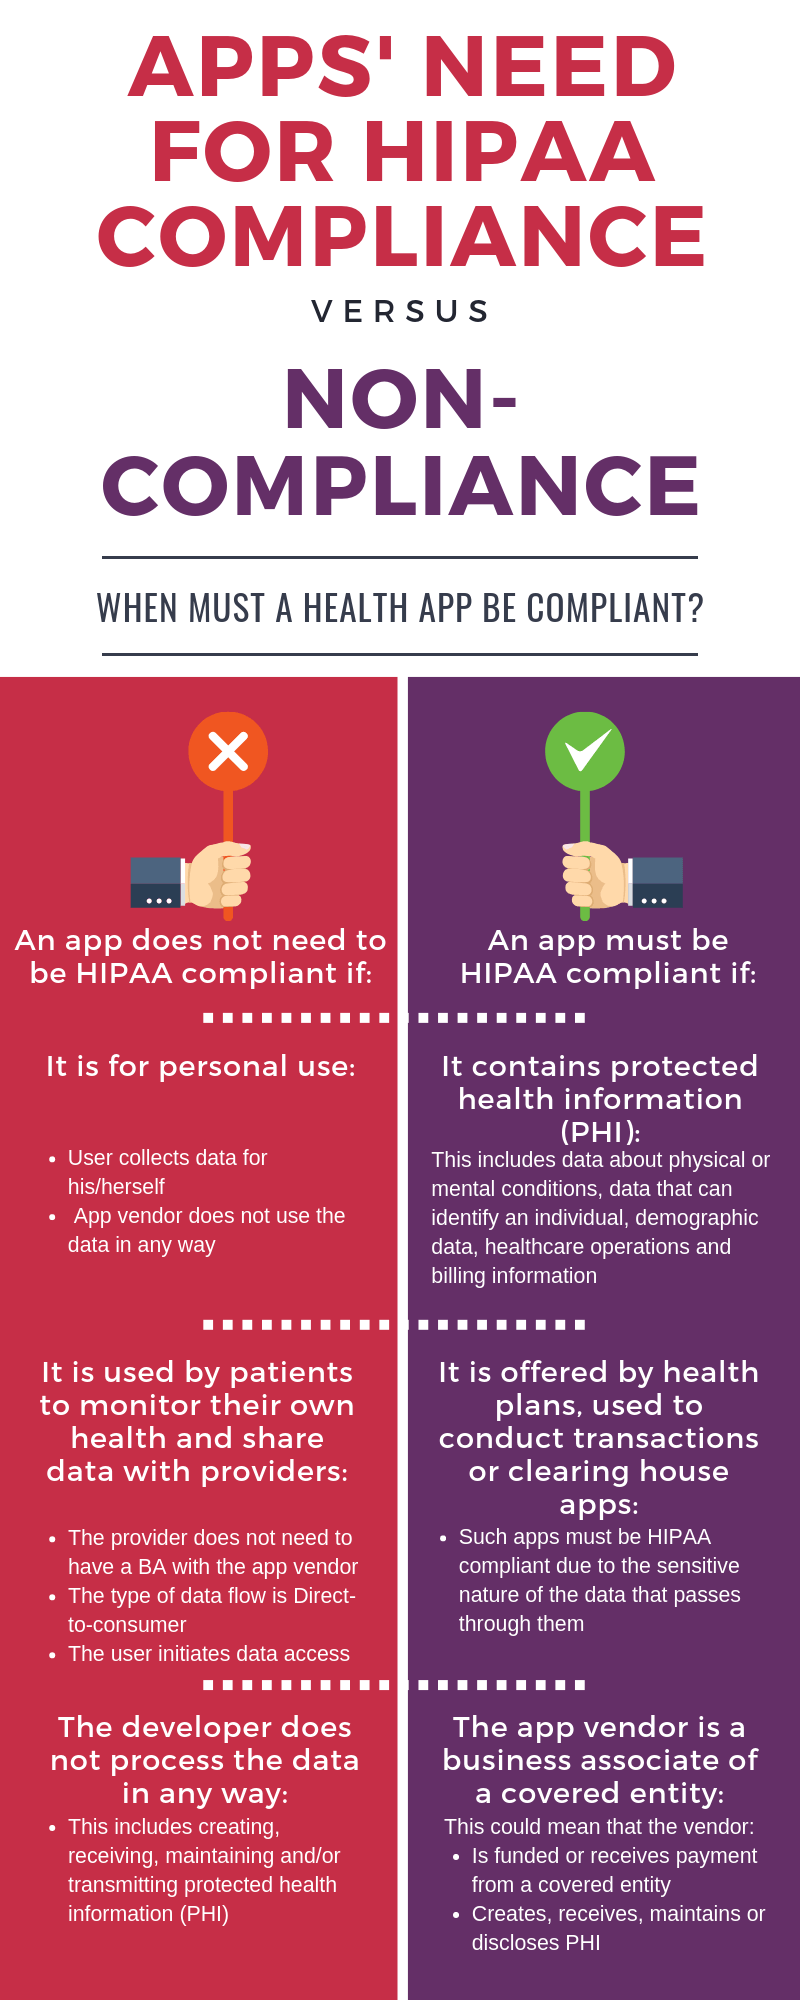 Apps' Need for HIPAA Compliance vs. Non Compliance